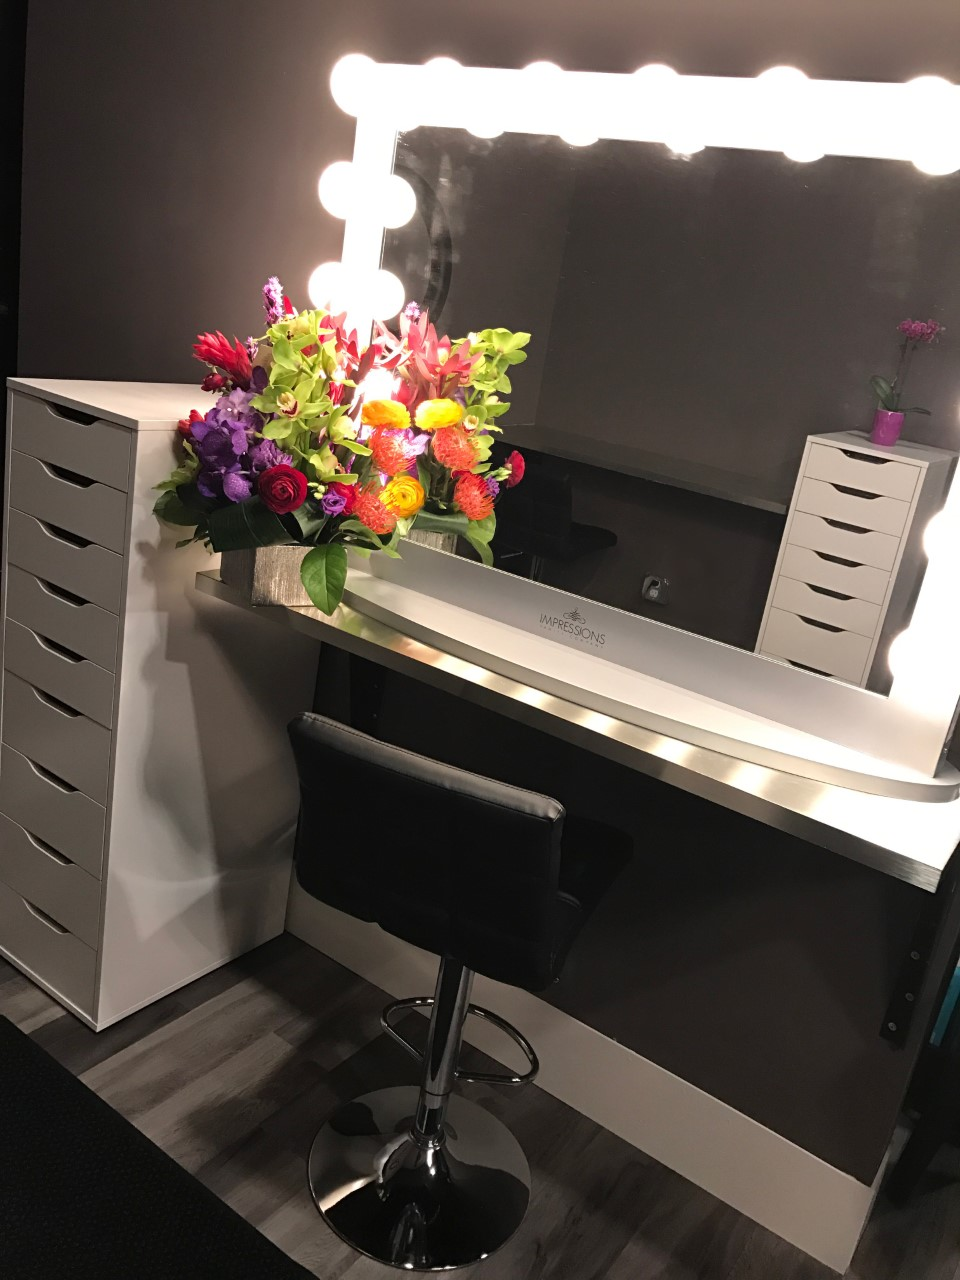 Salon Elite Spa Woodbury, Makeup Application, eyebrow waxing, body waxing, brazillian wax, bikini wax,  facials,  image skincare, eyelash extensions, eyelash lifting perming